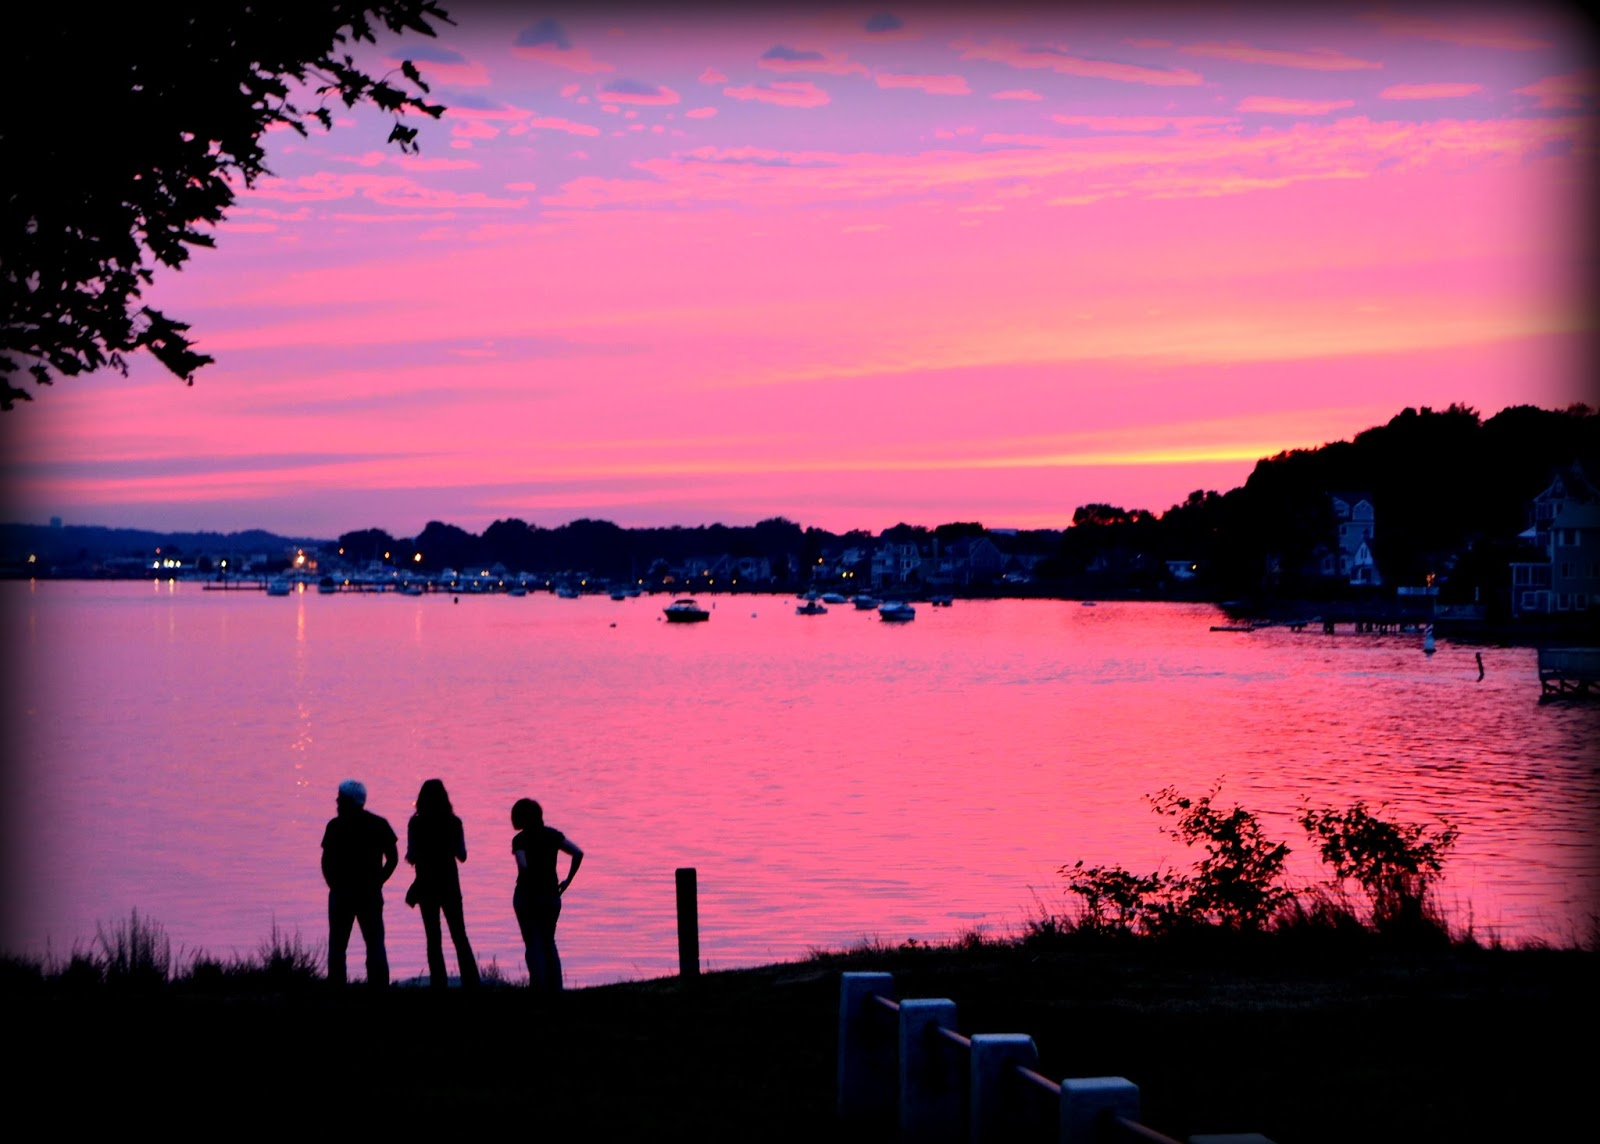 pink sunset, peaceful, beverly, massachusetts, danvers river